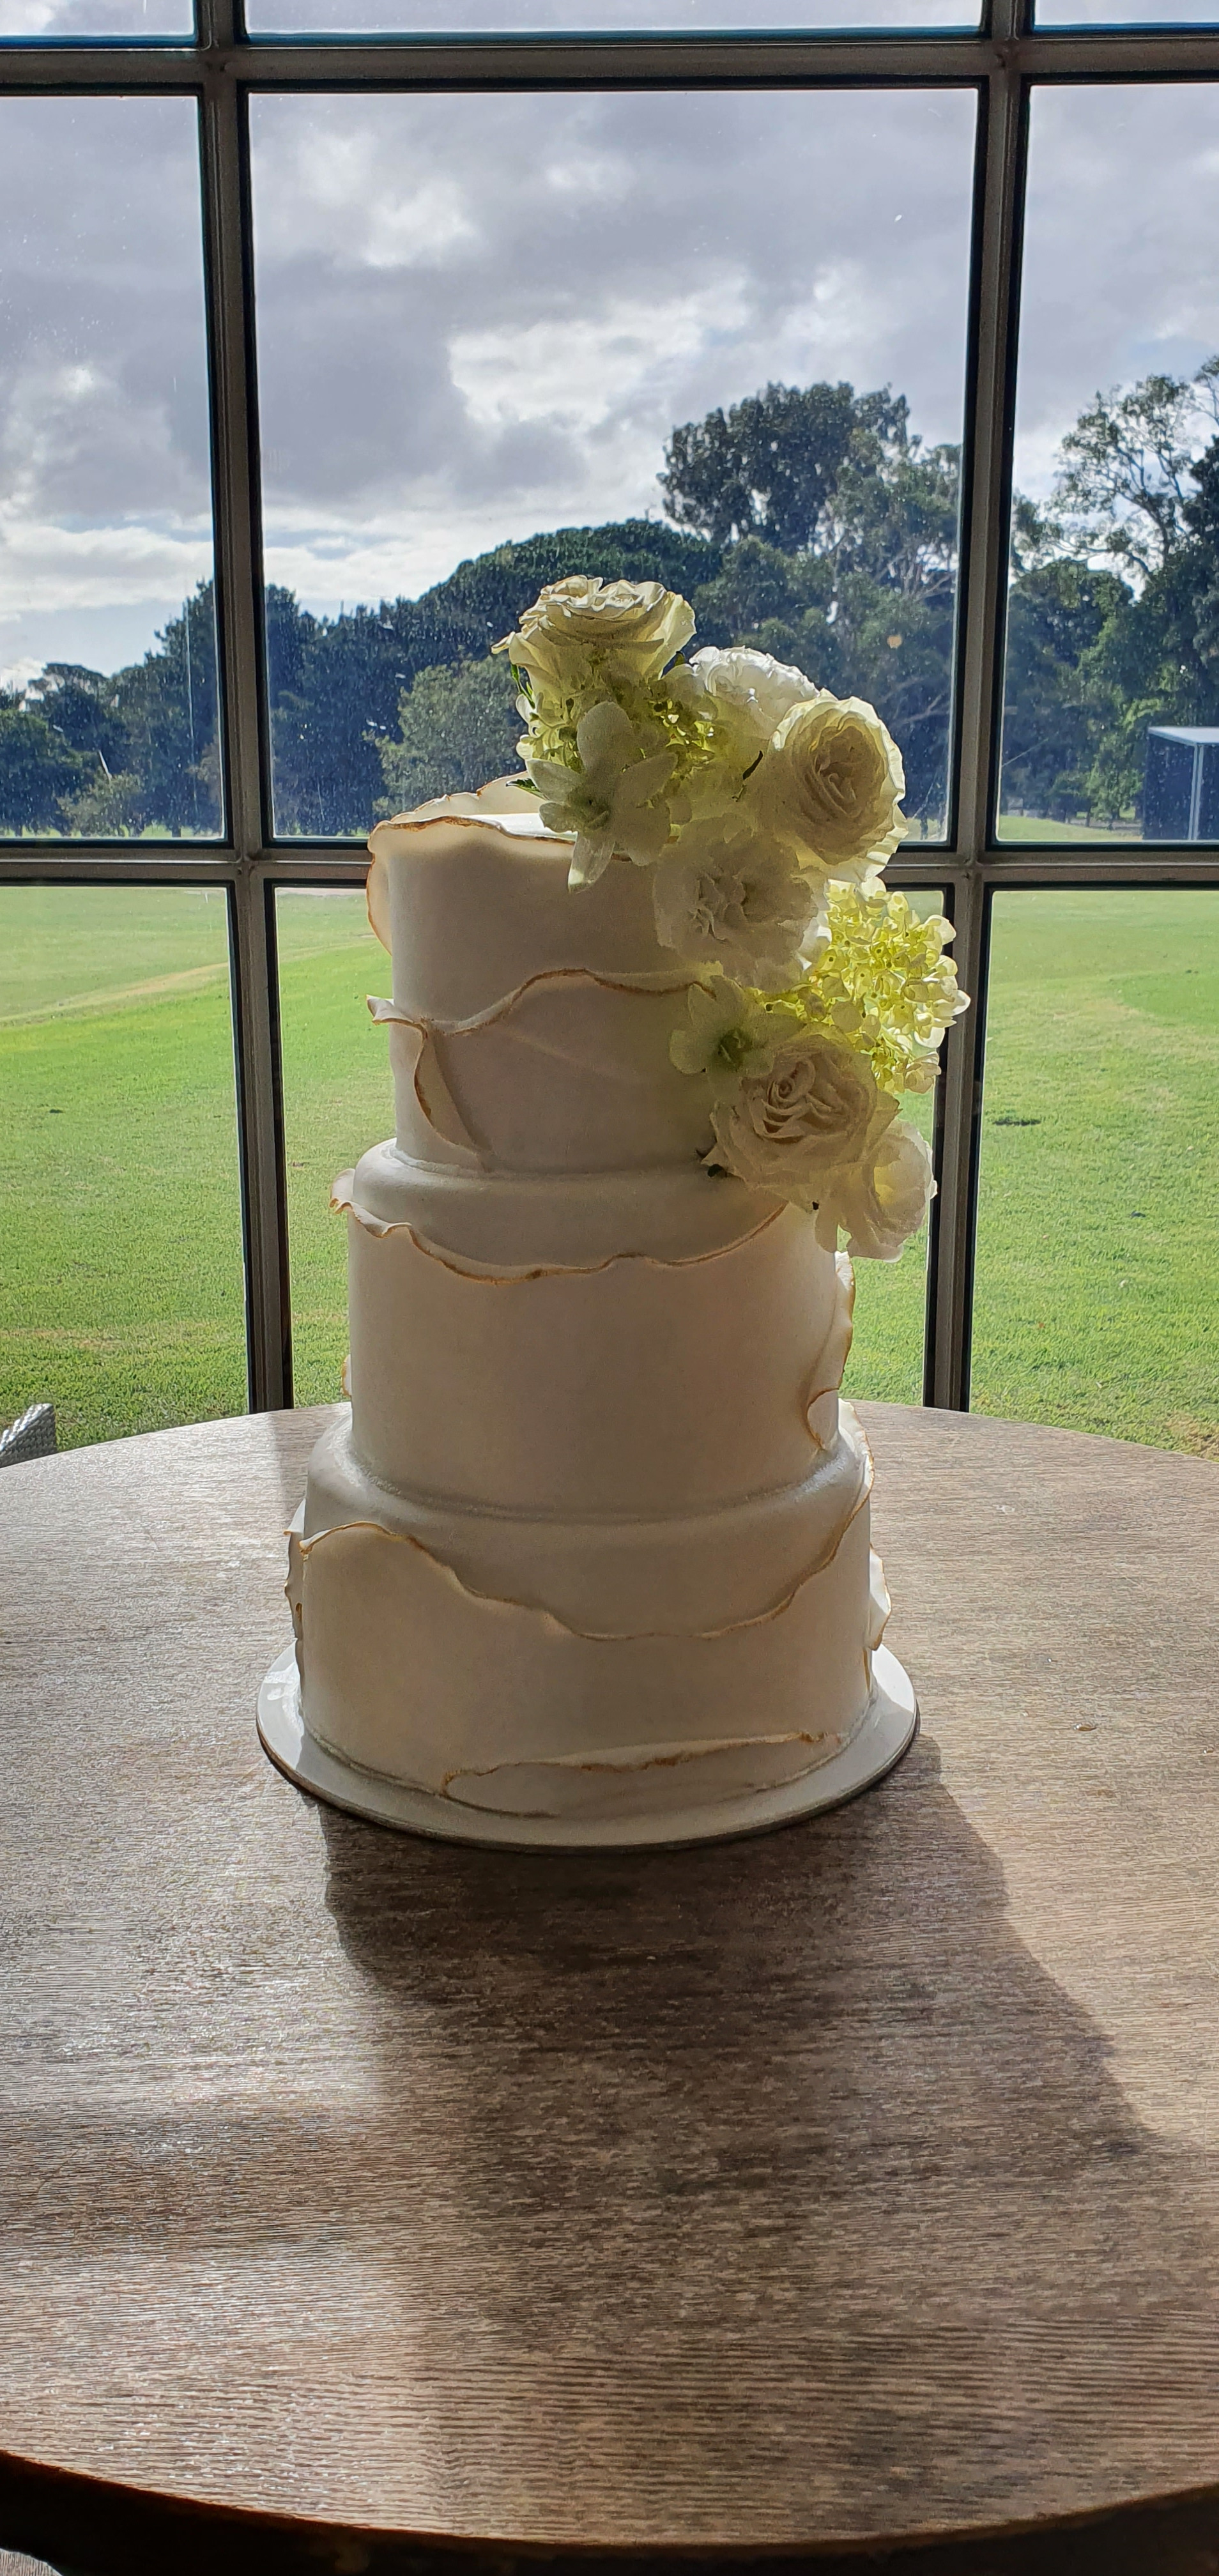 Ruffle fondant wedding cake with gold edge detailing from $650